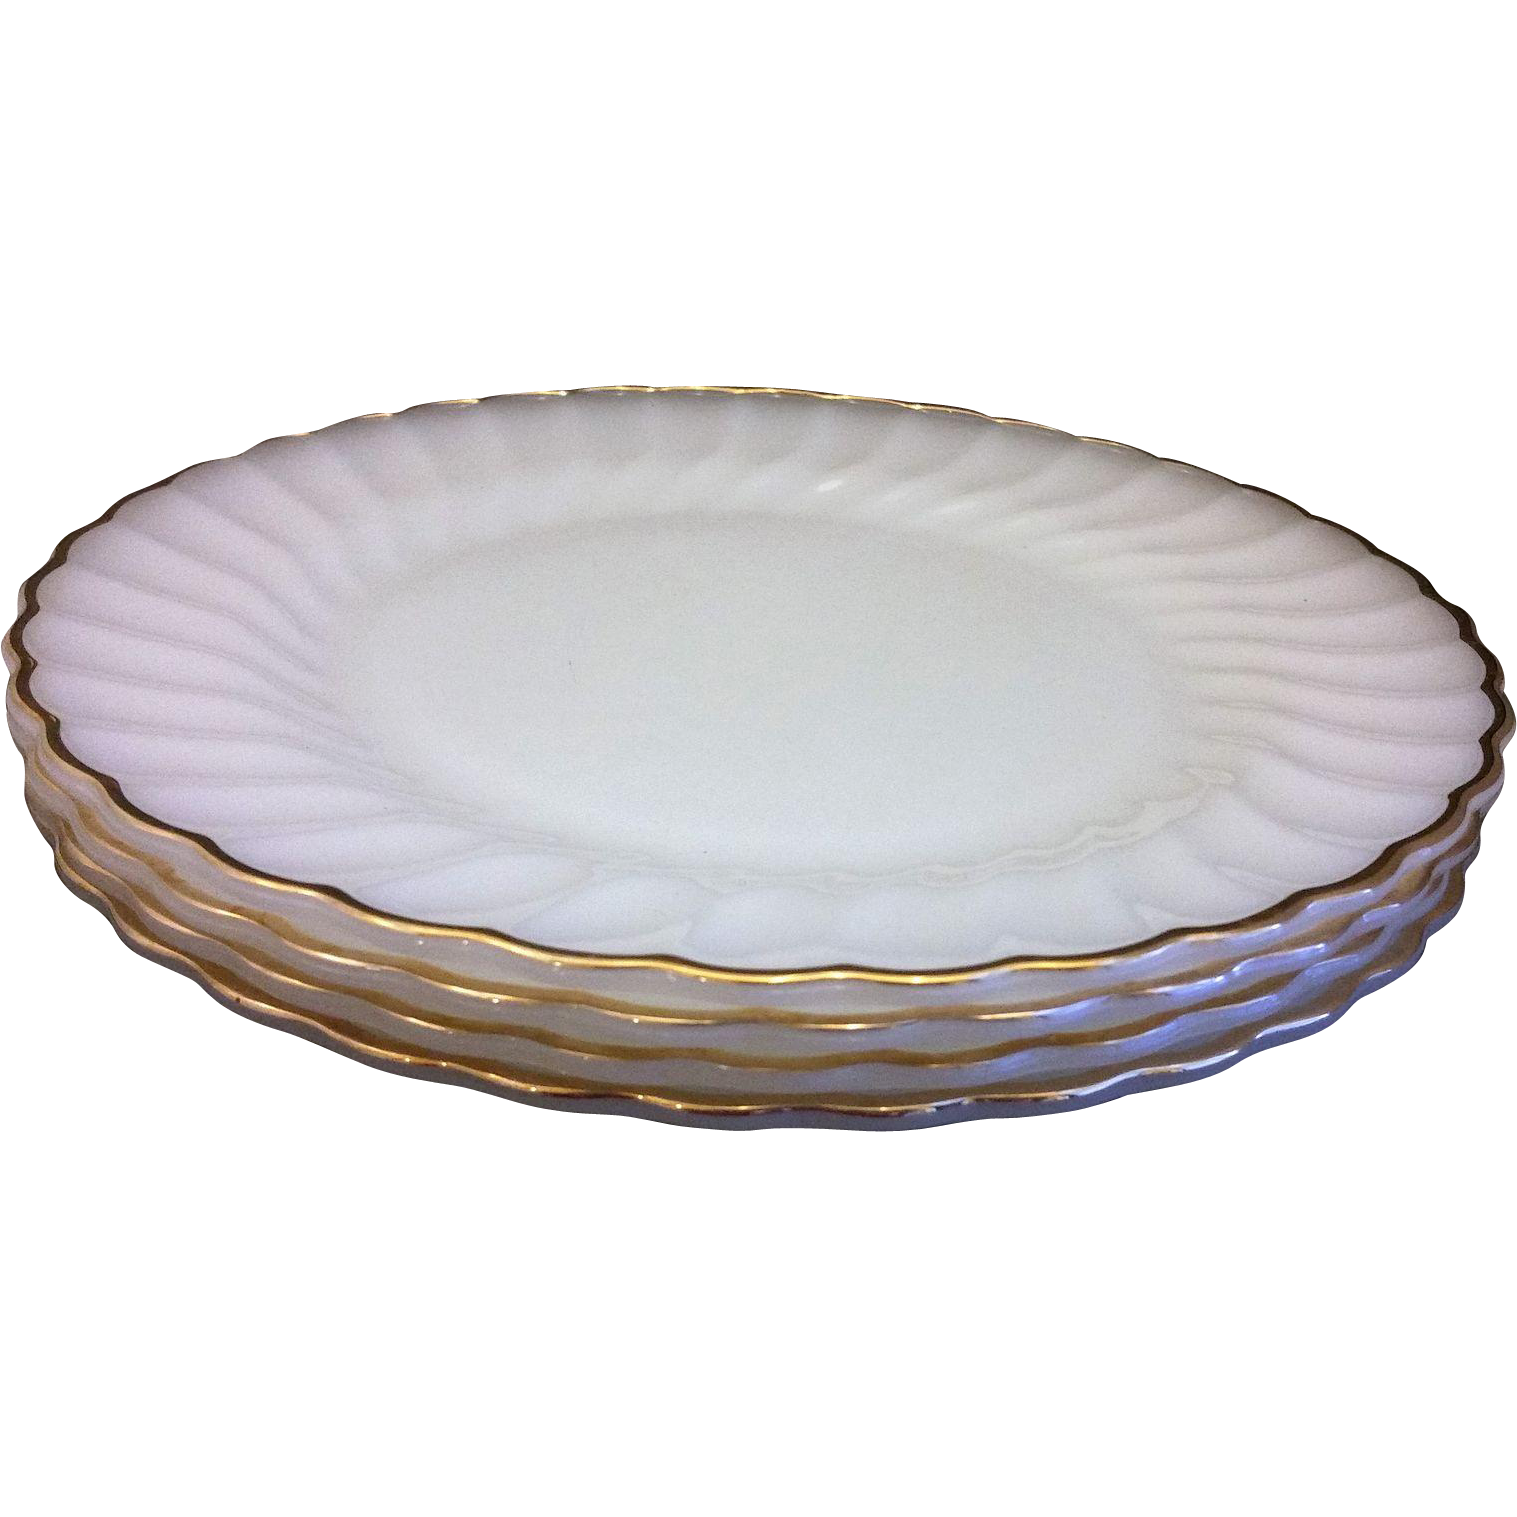 Golden Shell Milk Glass Swirl Dinner Plates Set of 4 Anchor Hocking